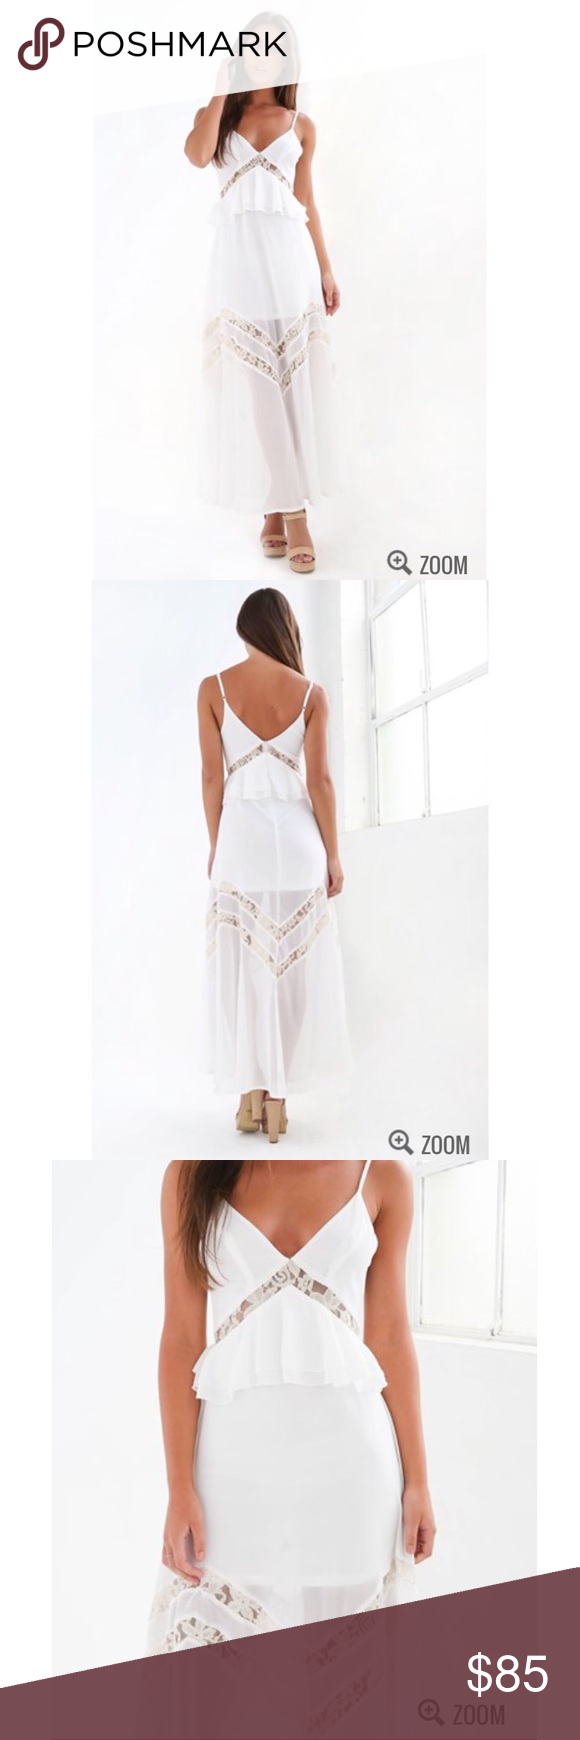 Long white maxi dress **Available in AUS size 6, 8, 10, 12 (equivalent to US XS, S, M, L)***  thin straps lace detailed cut outs sheer overlay zip closure tiger mist Dresses Maxi